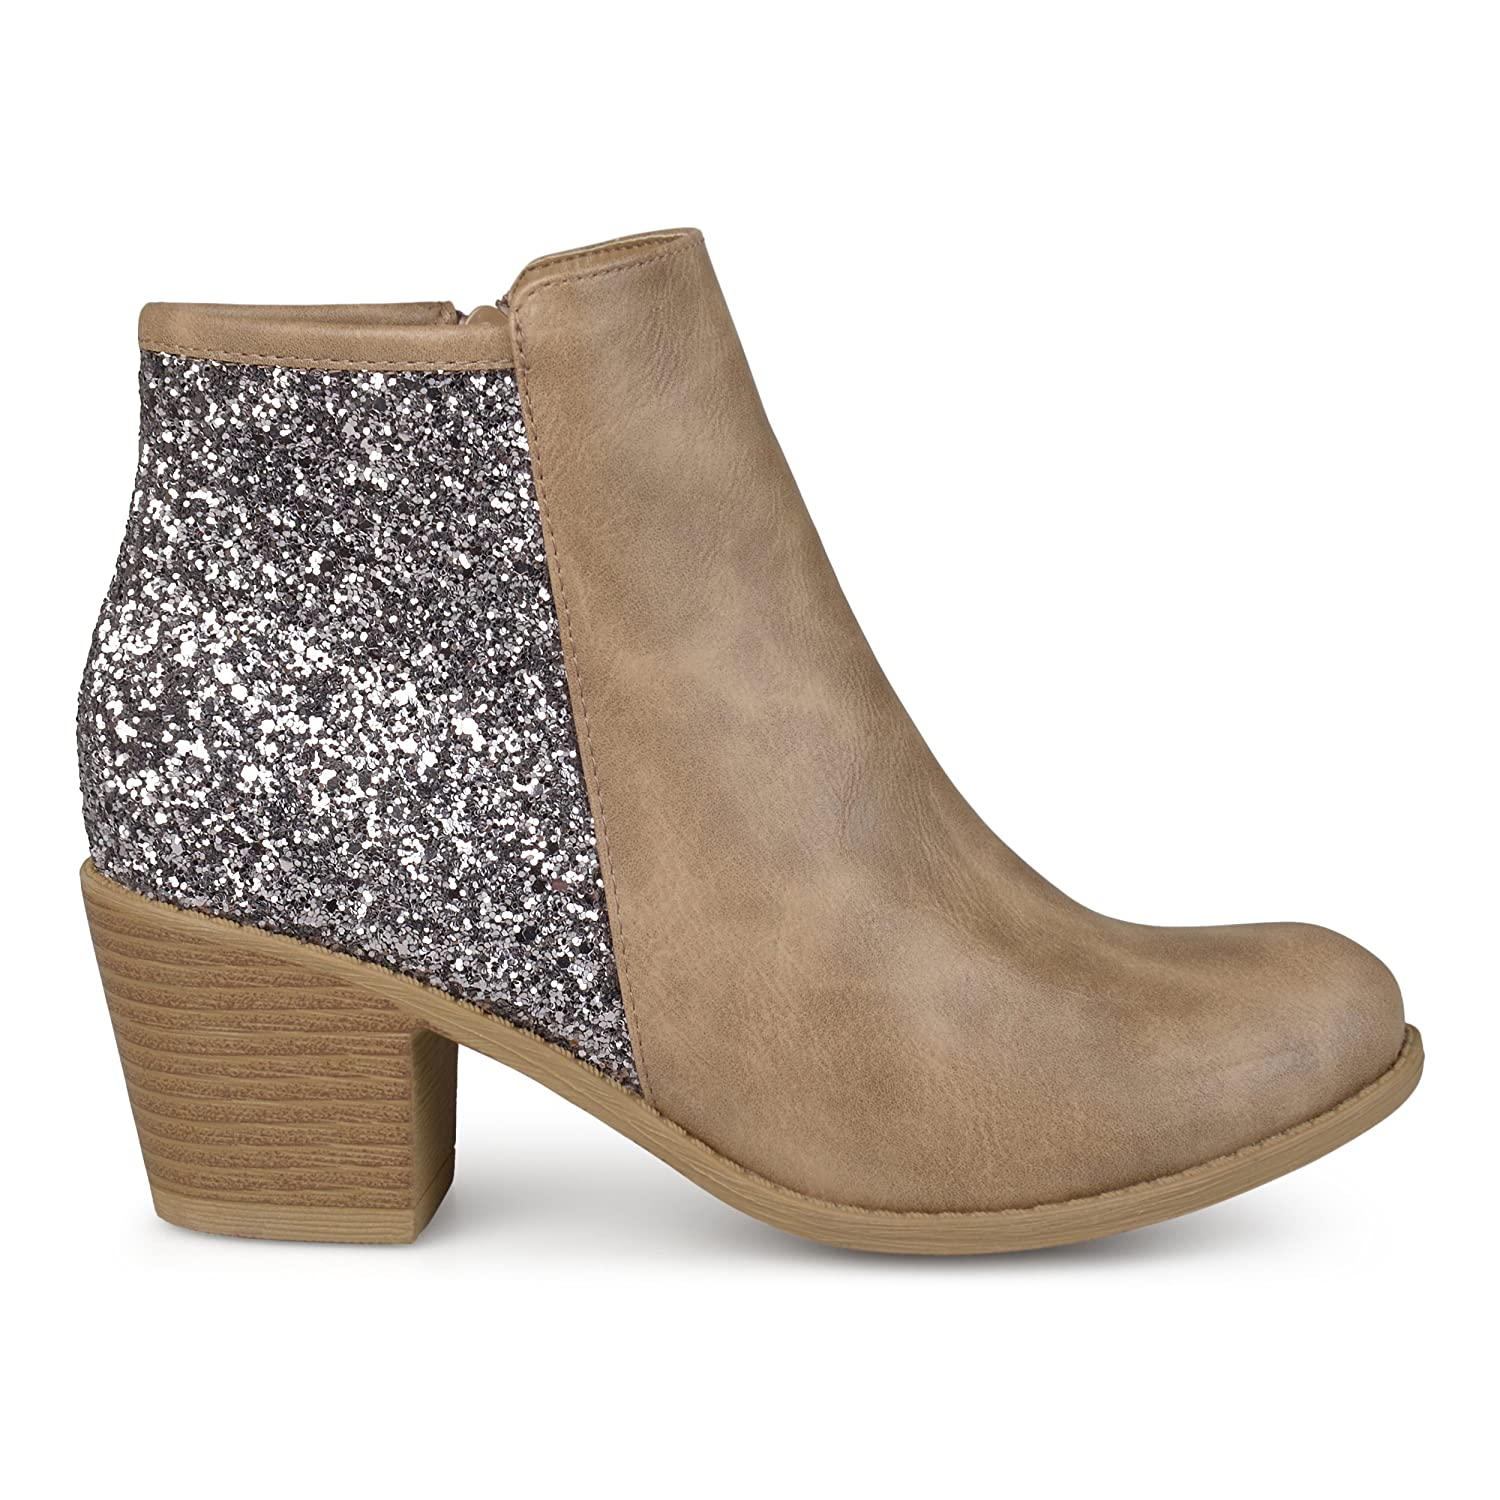 cb10b140eaa006 Womens Faux Leather Wood Stacked Heel Glitter Booties